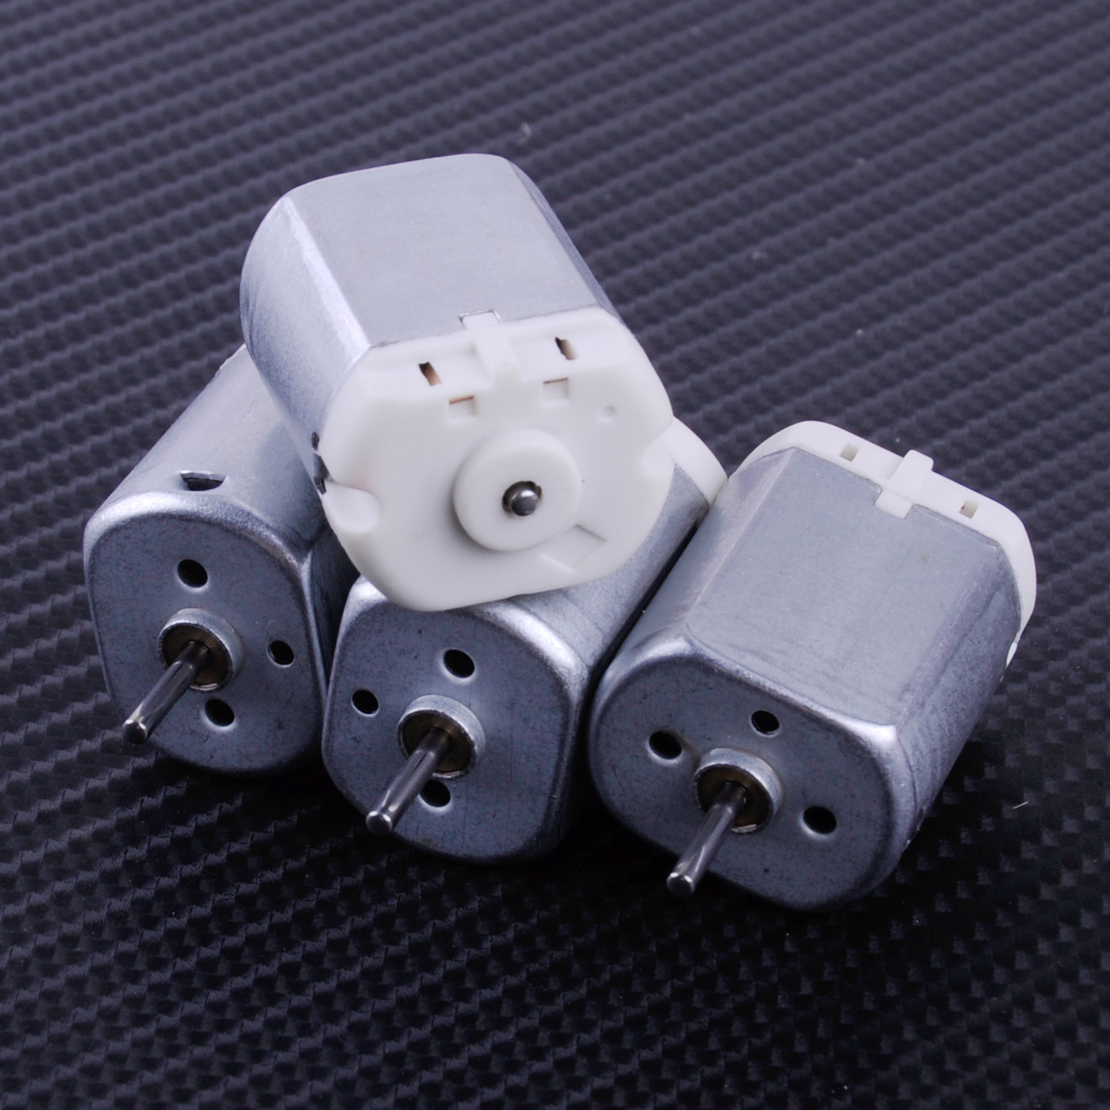 DWCX 4Pcs 10mm 12V Shaft Door Lock Motor Fit for Mabuchi Lexus <font><b>Honda</b></font> Toyota FC280PC 22125 KF243G-101 image